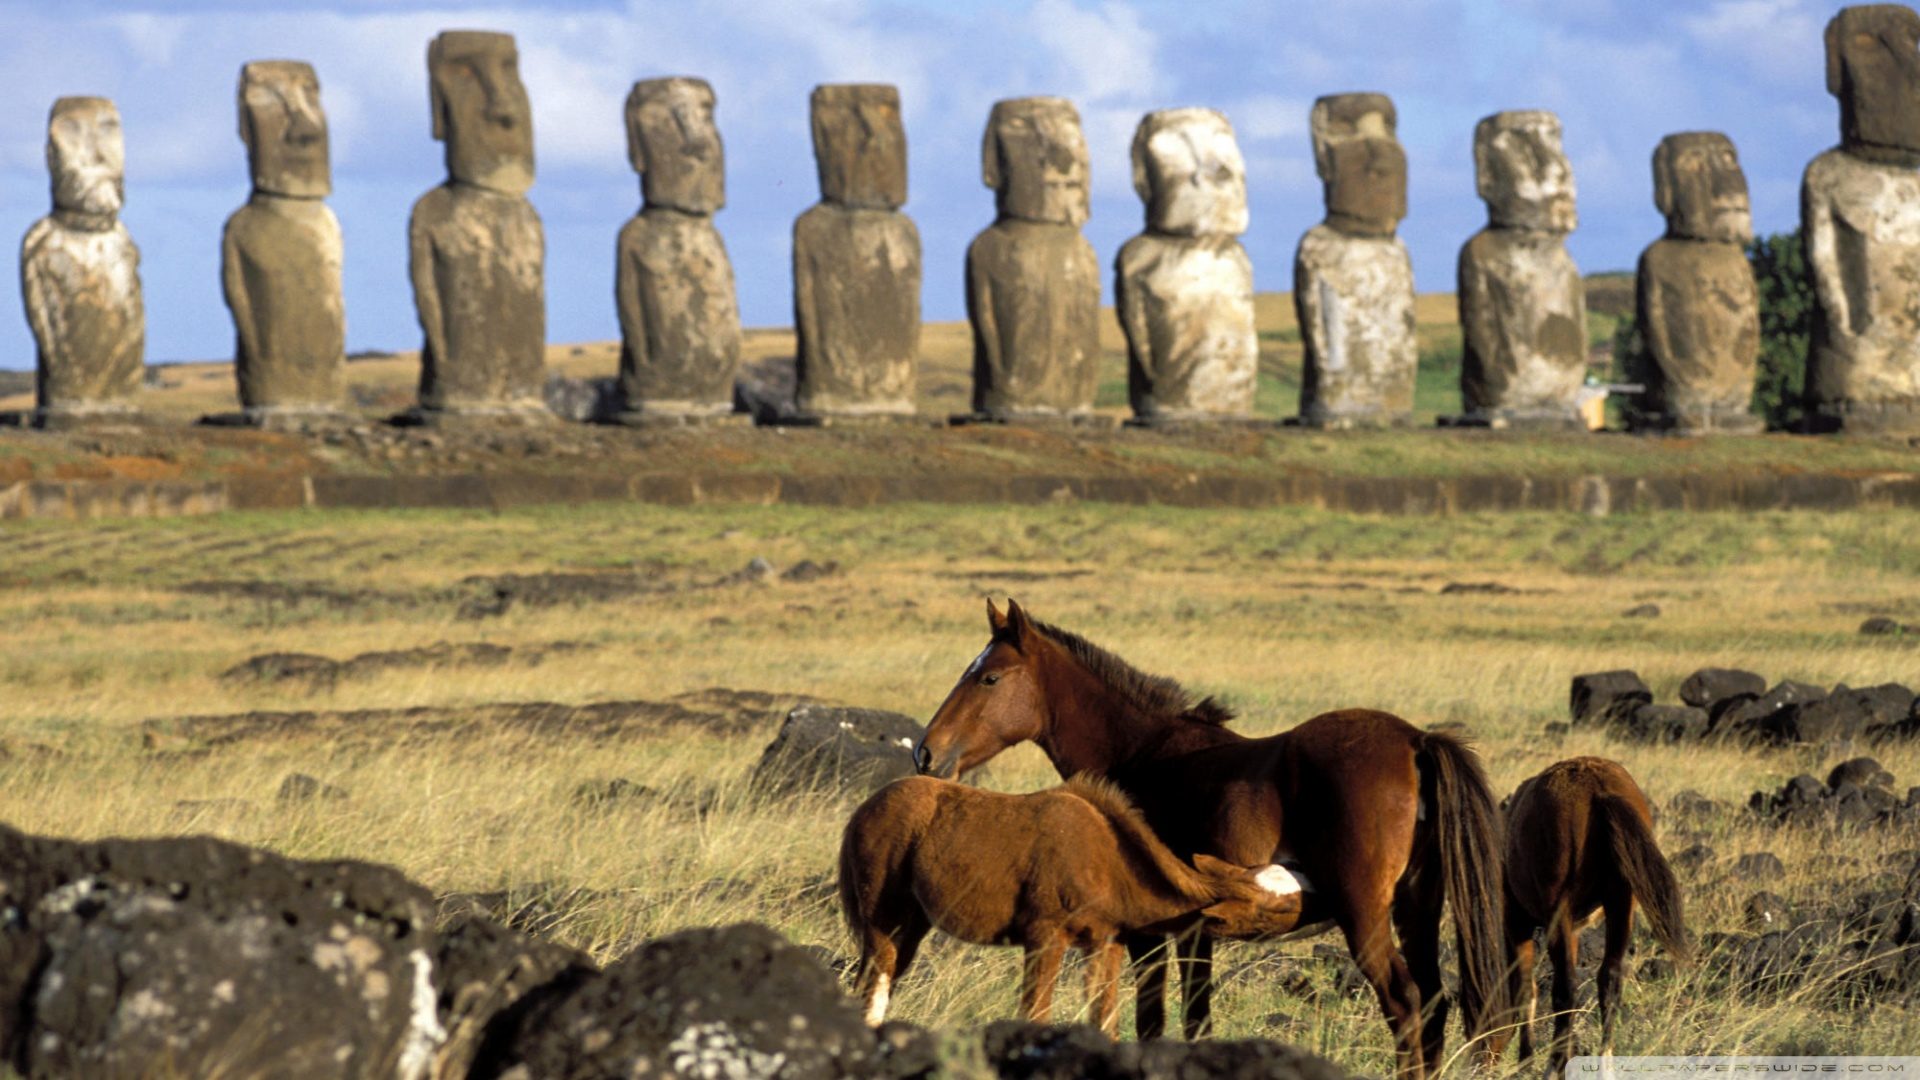 Easter Island Chile Wallpaper 1920x1080 Horses Of Easter Island 1920x1080